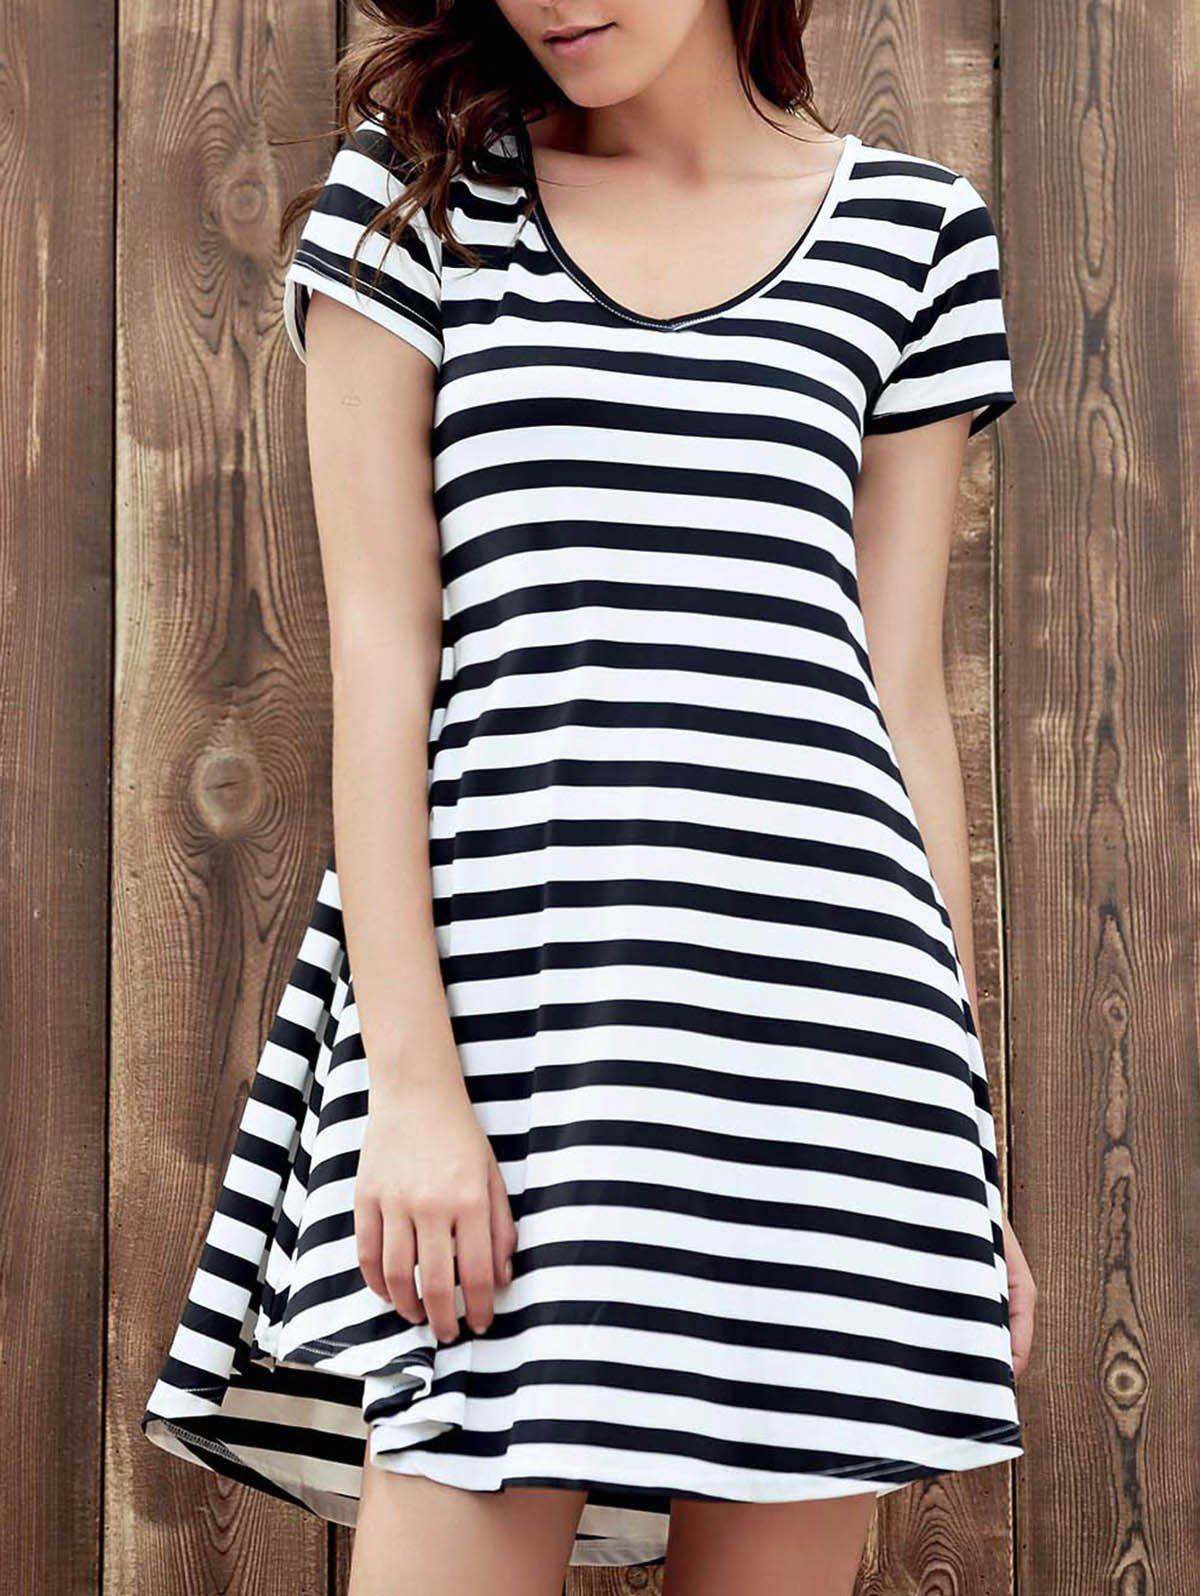 Sweet Style V Neck Short Sleeve Black and White Stripe Women's Dress - WHITE/BLACK S